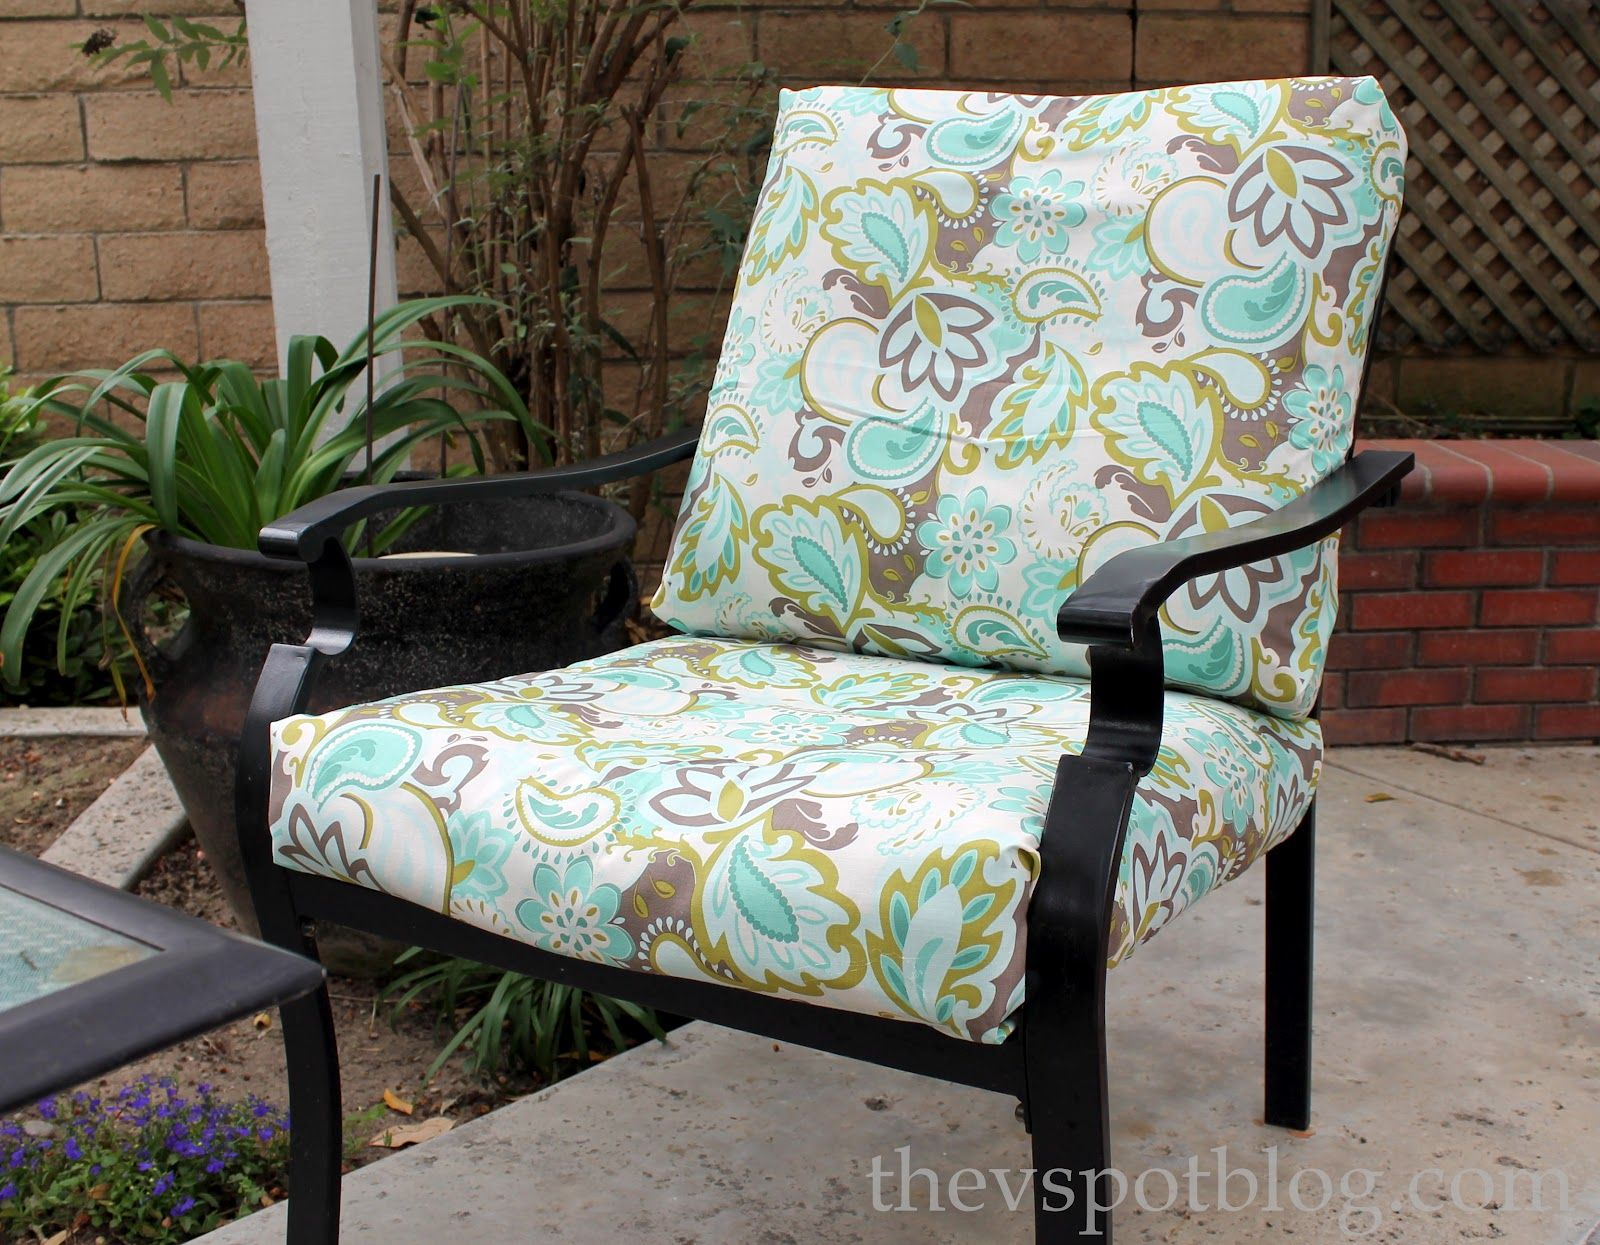 Using Outdoor Furniture Indoors No Sew Project How To Recover Your Outdoor Cushions Using